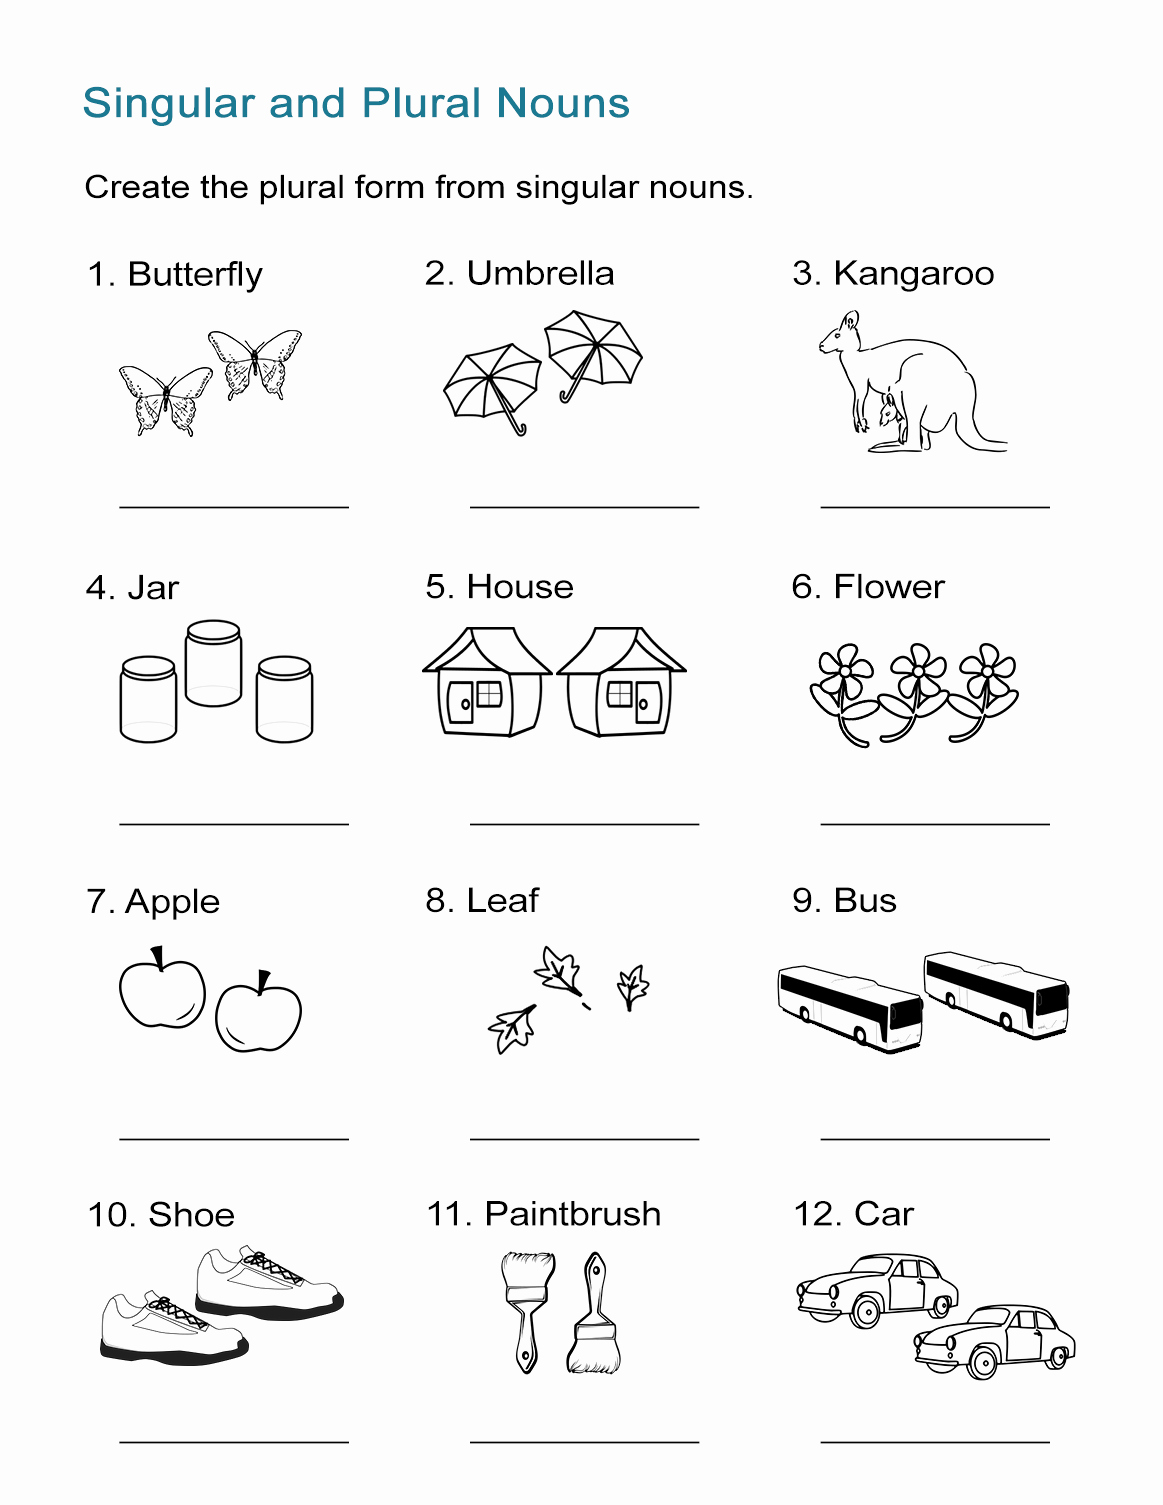 Singular and Plural Nouns Worksheet Awesome Singular and Plural Nouns Worksheet All Esl